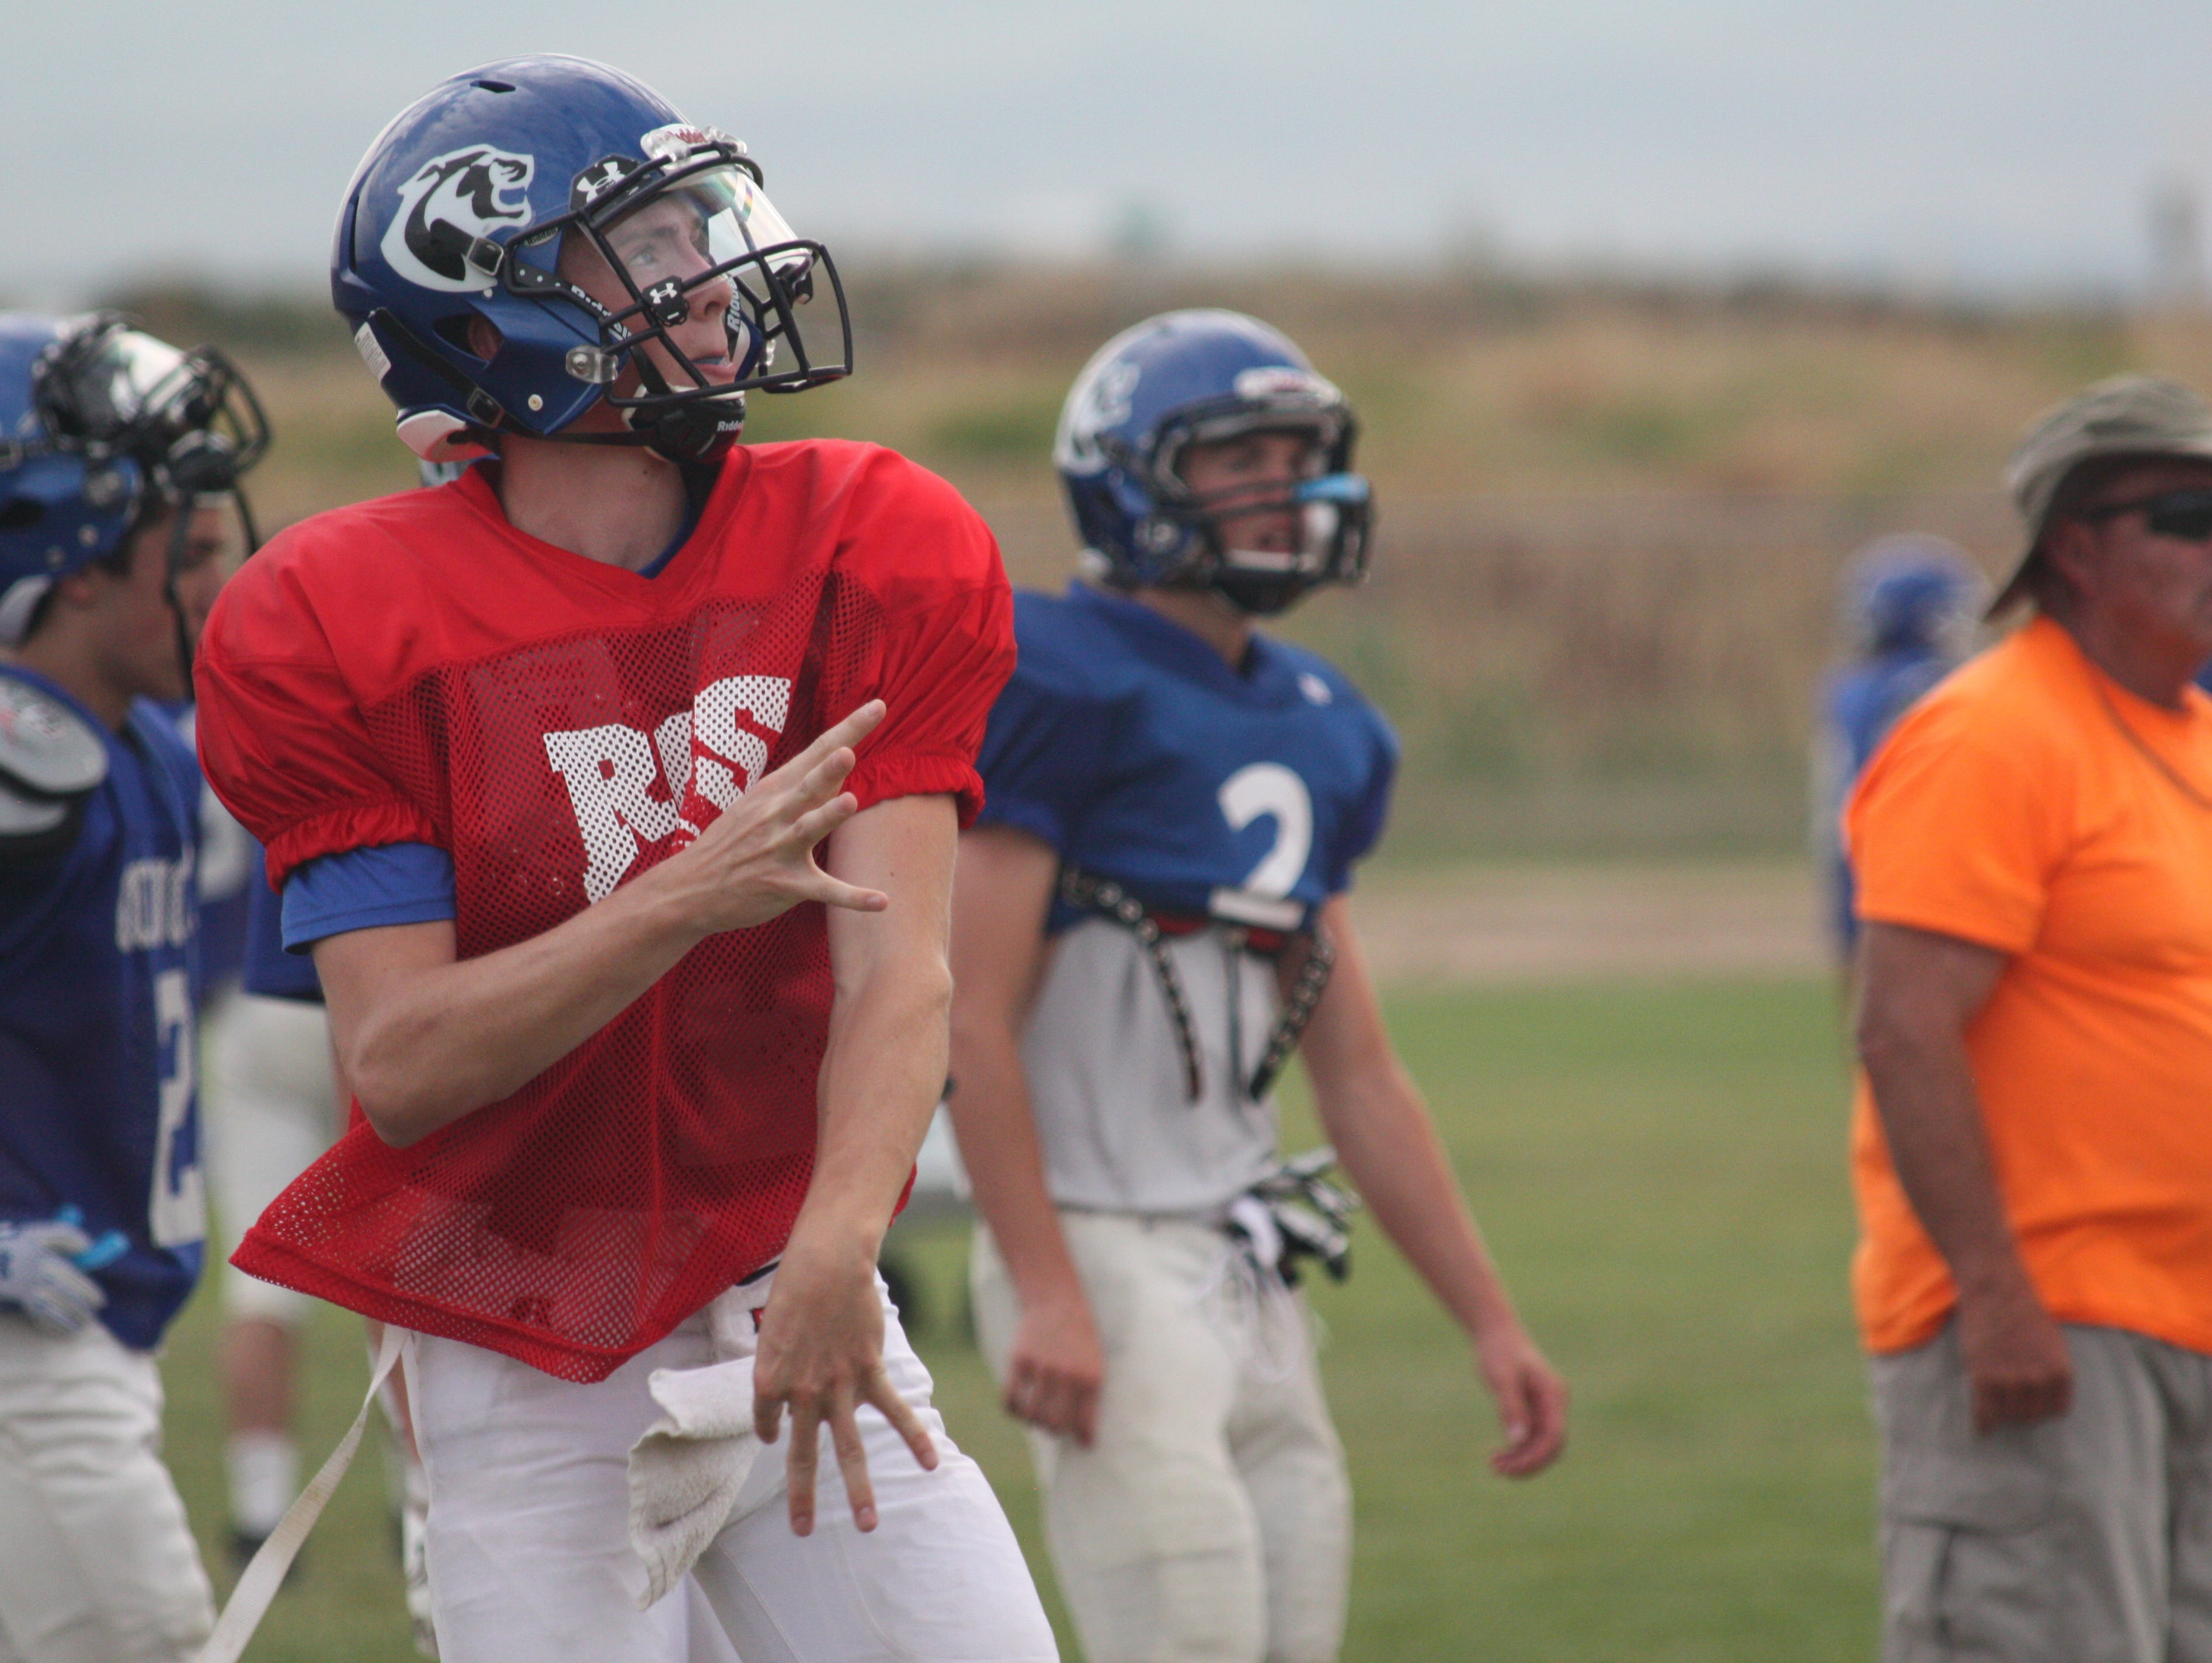 Resurrection Christian's Michael Stevenson has been named the Coloradoan's Male Athlete of the Week.